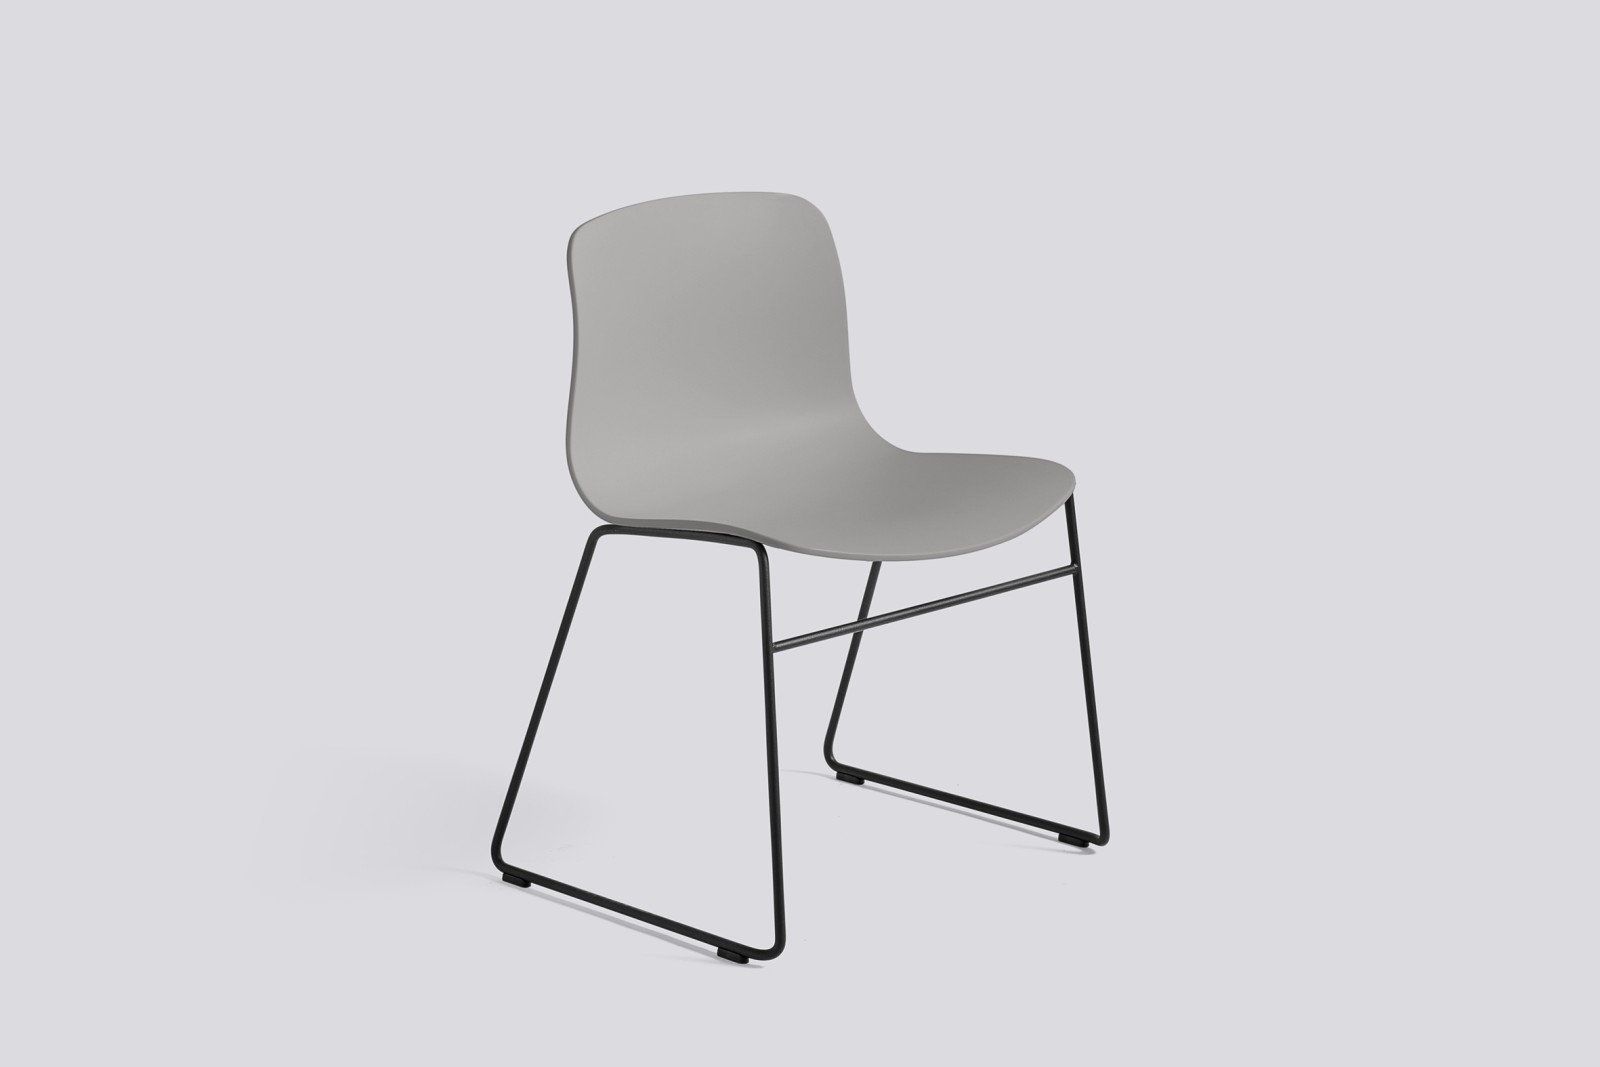 About A Chair AAC08 Concrete Grey Seat and Black Base